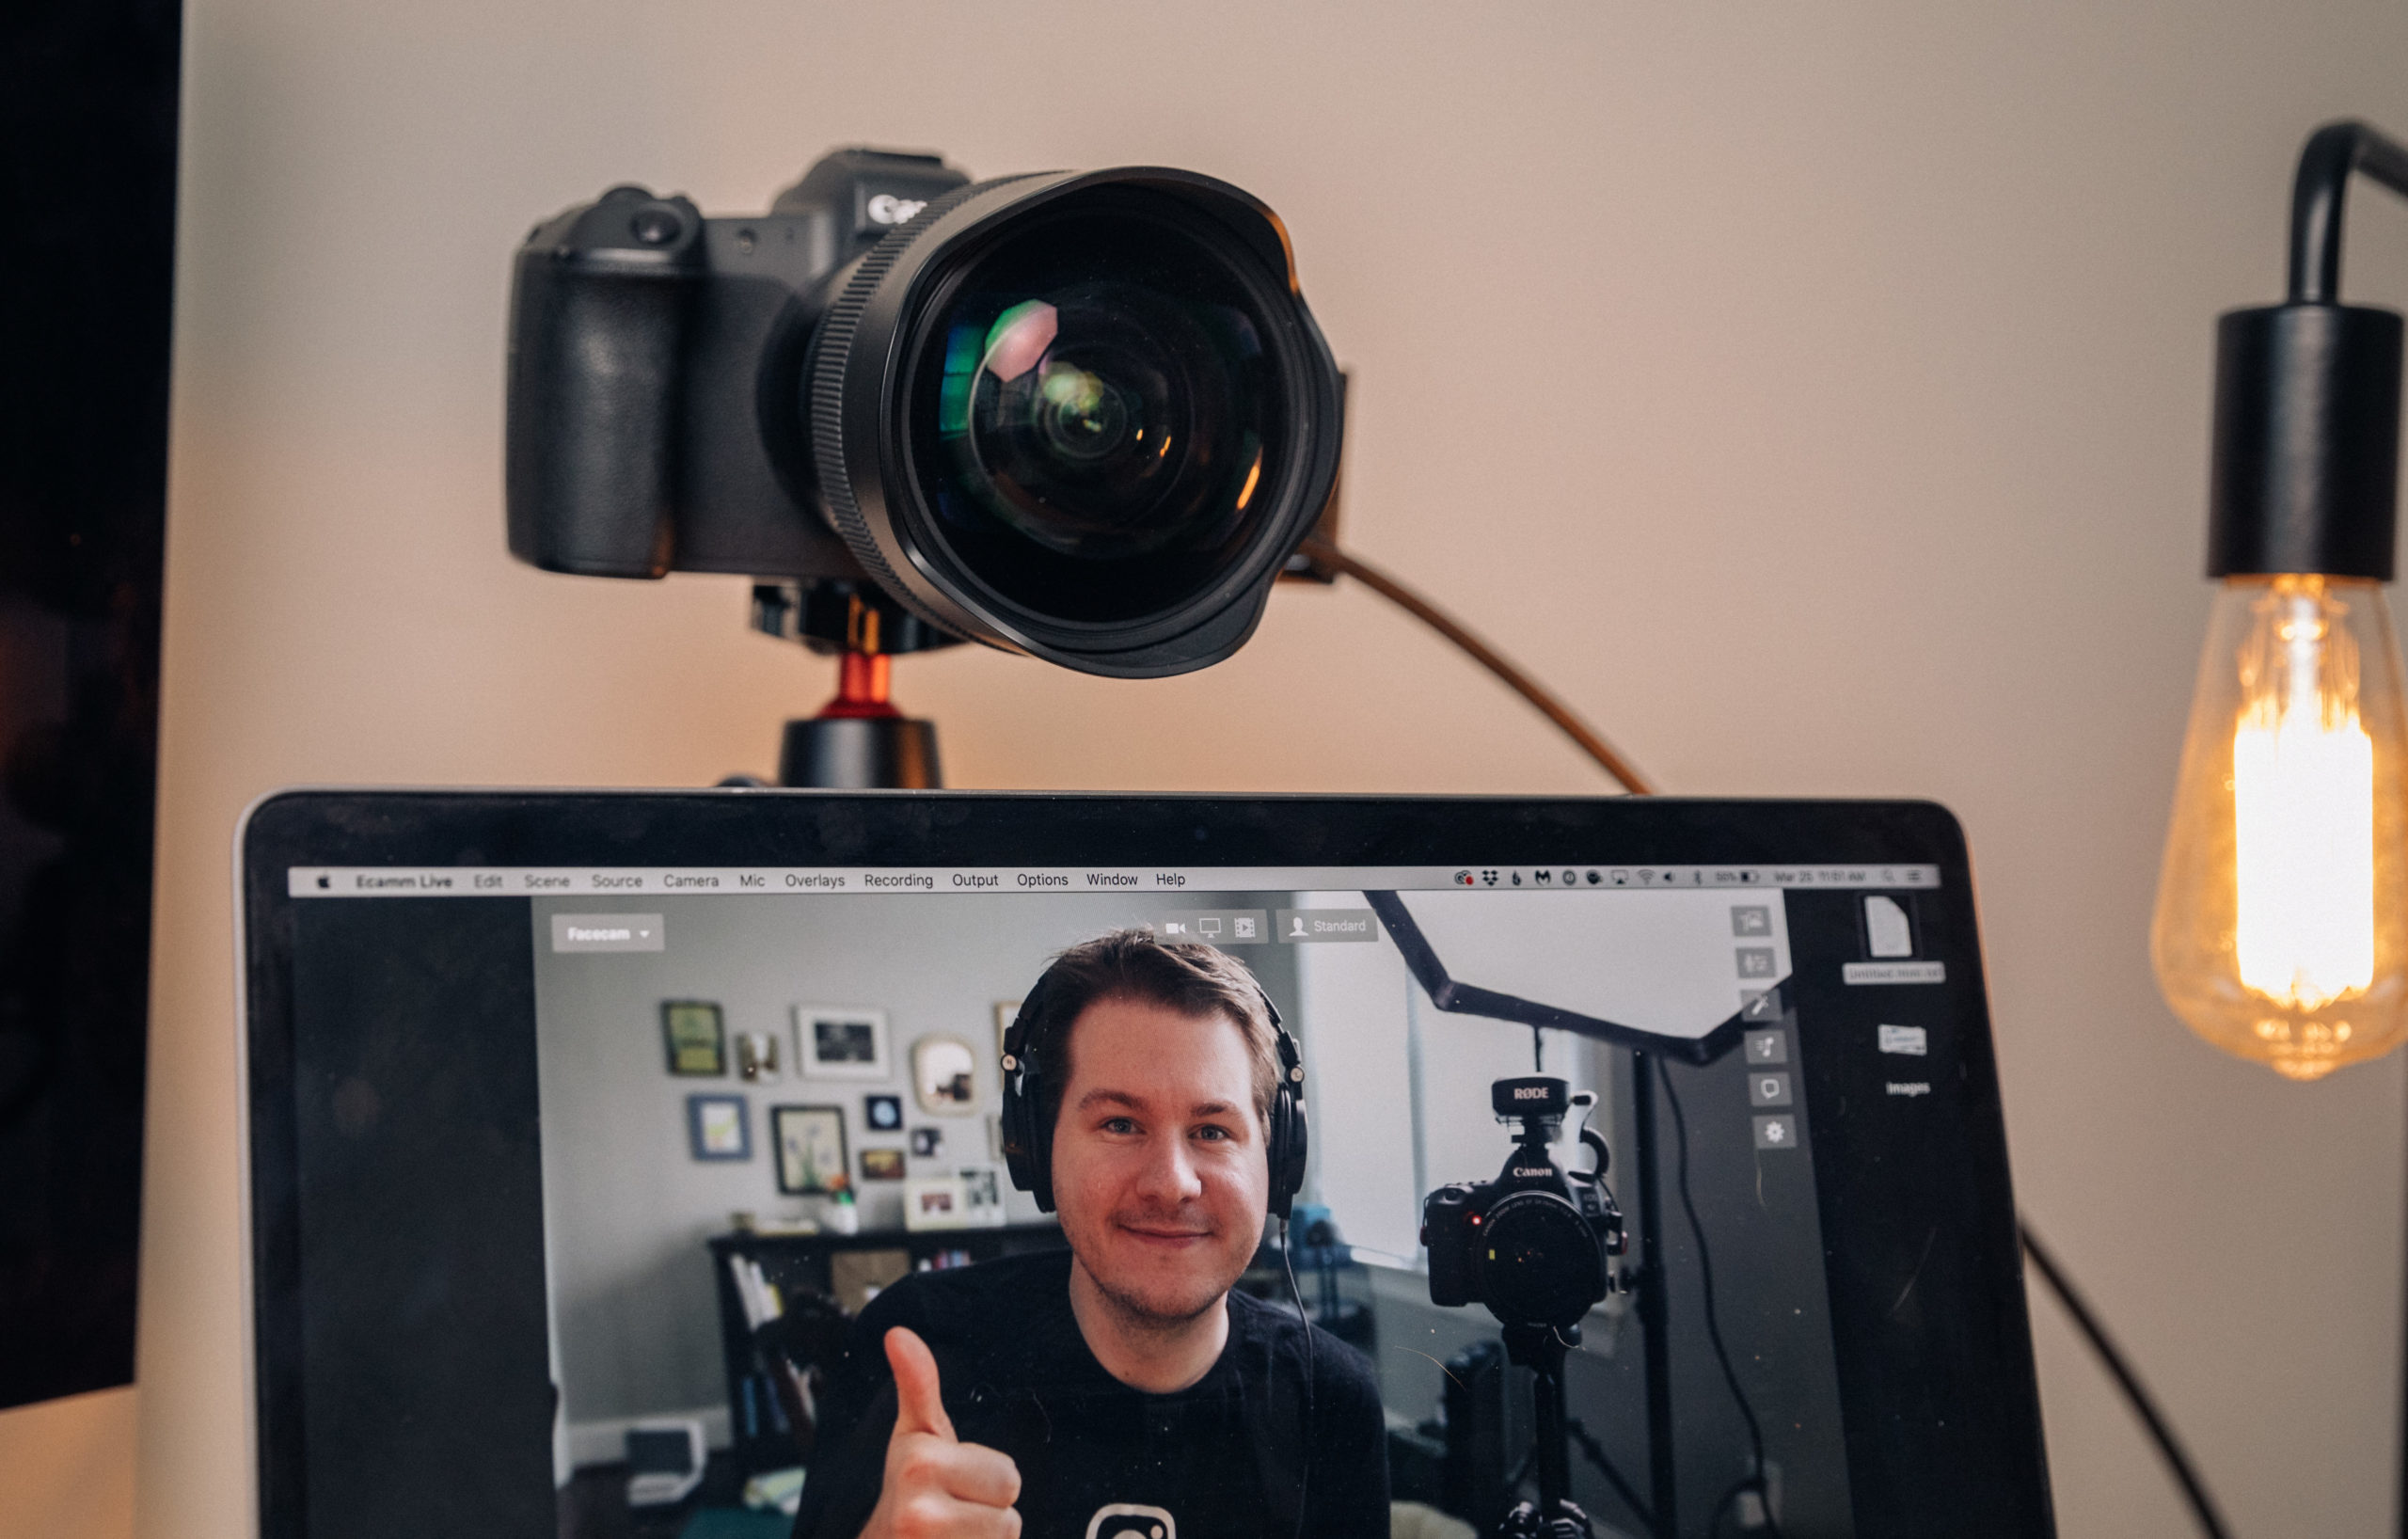 How to Livestream with Canon EOS R (Step-by-Step Guide)